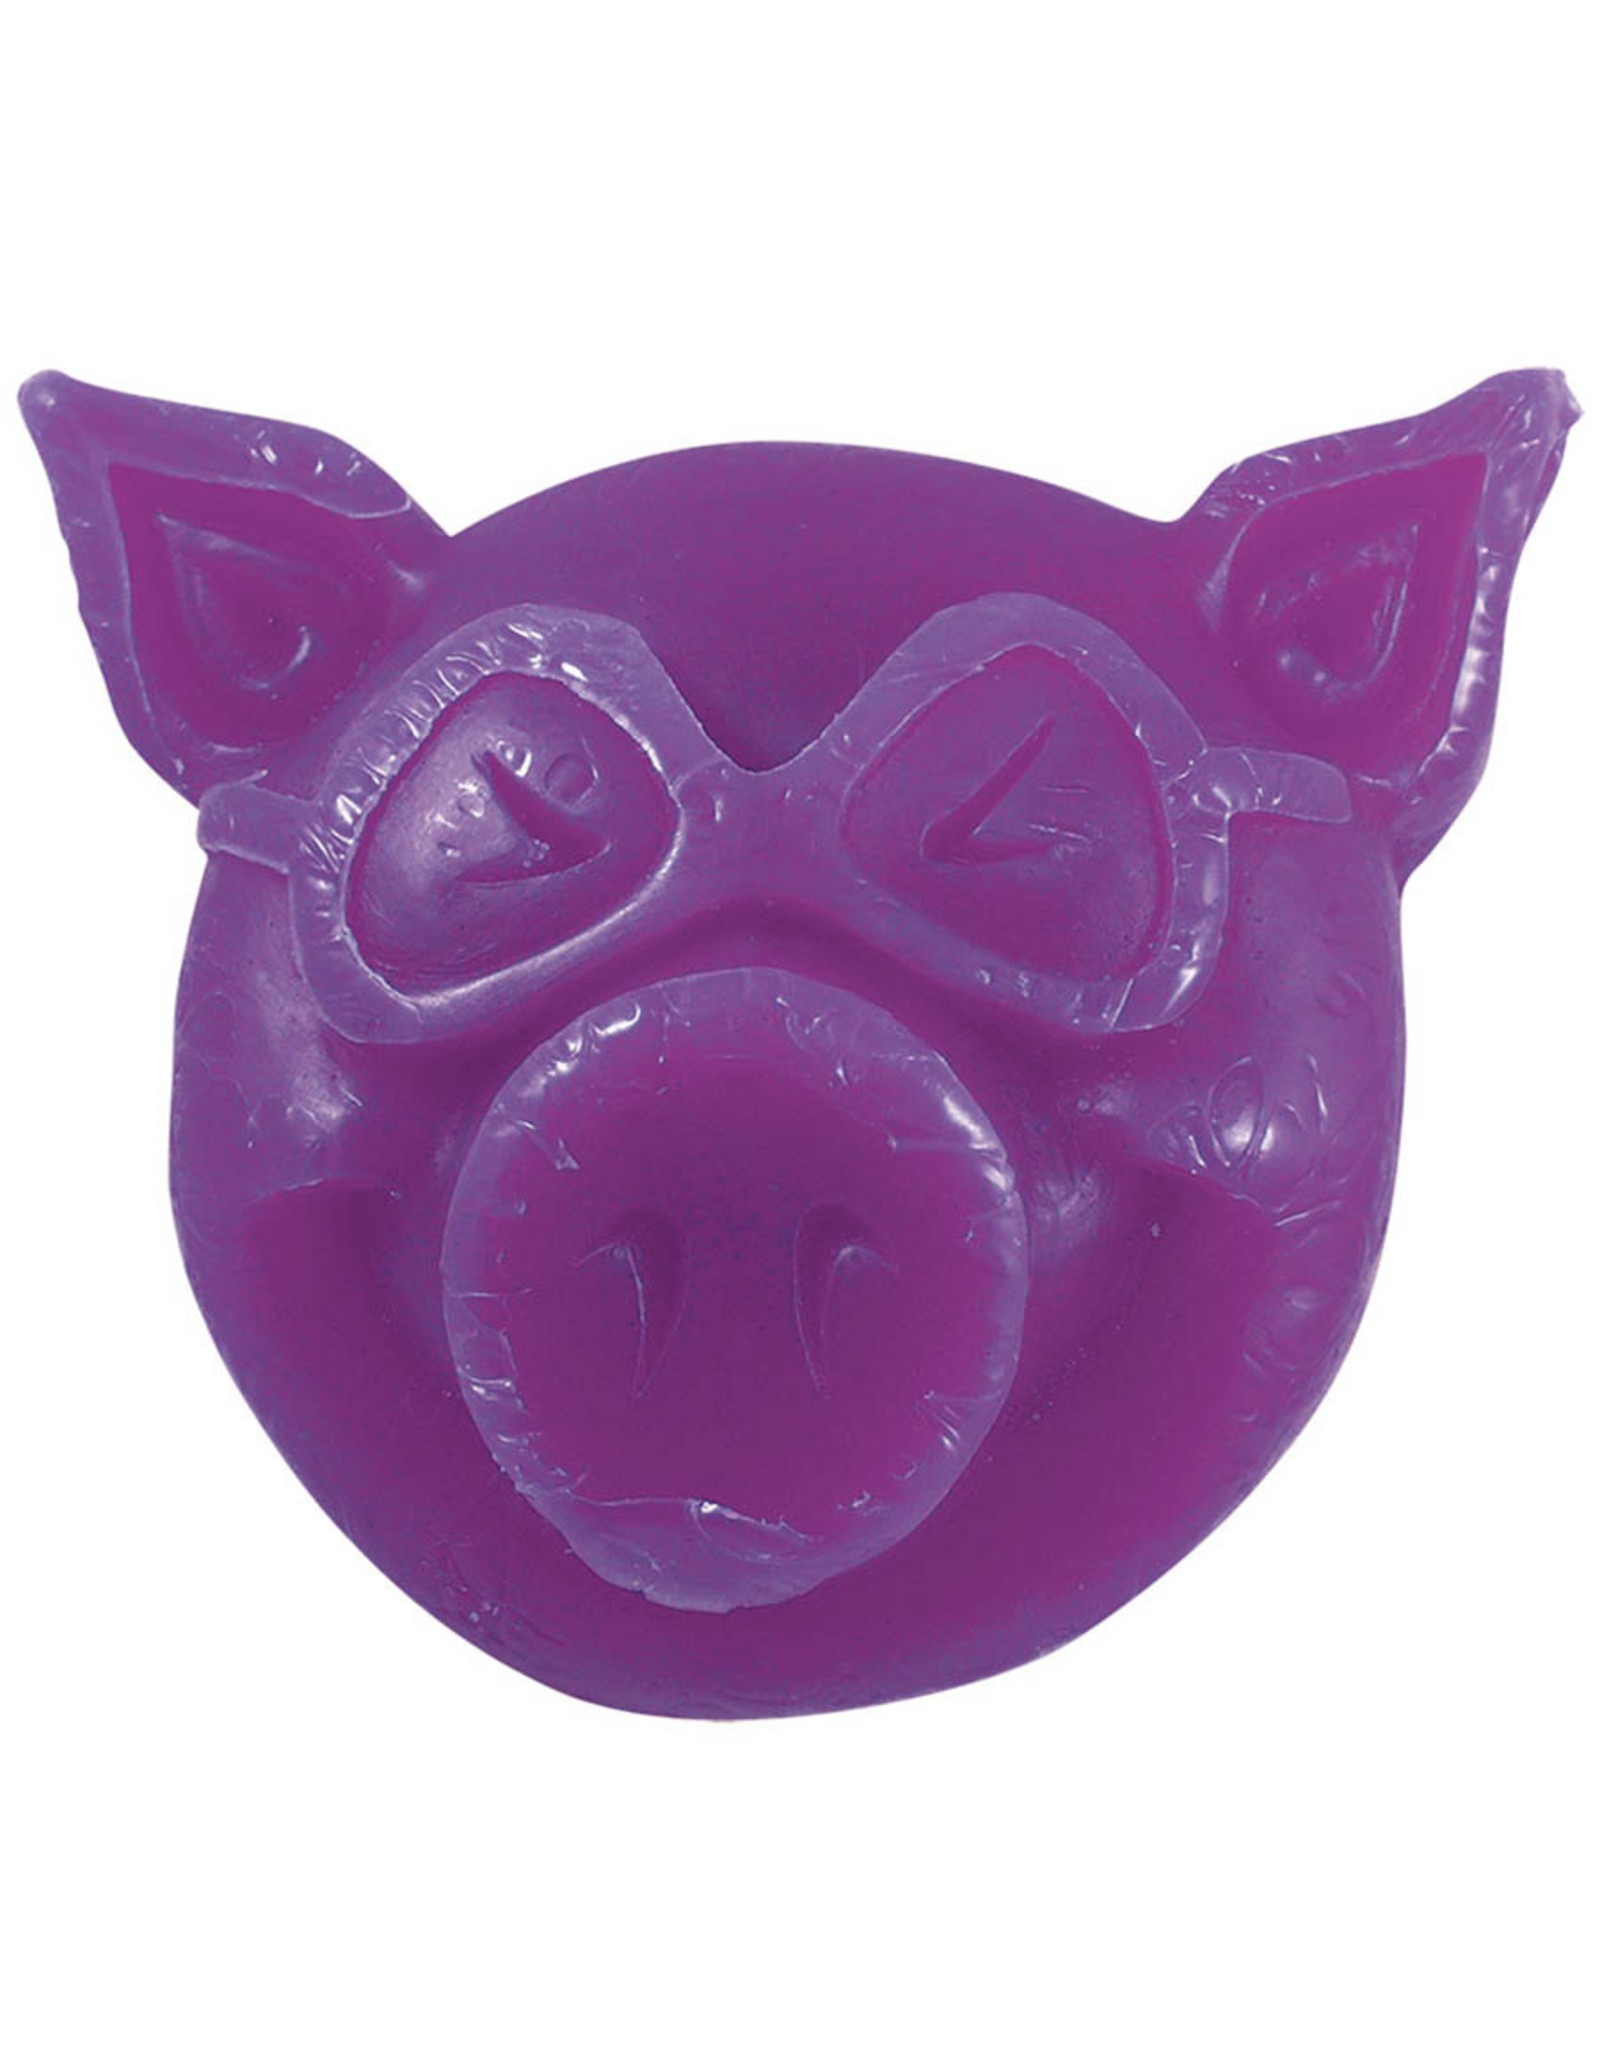 Pig Pig Wax Pig Head (Purple)